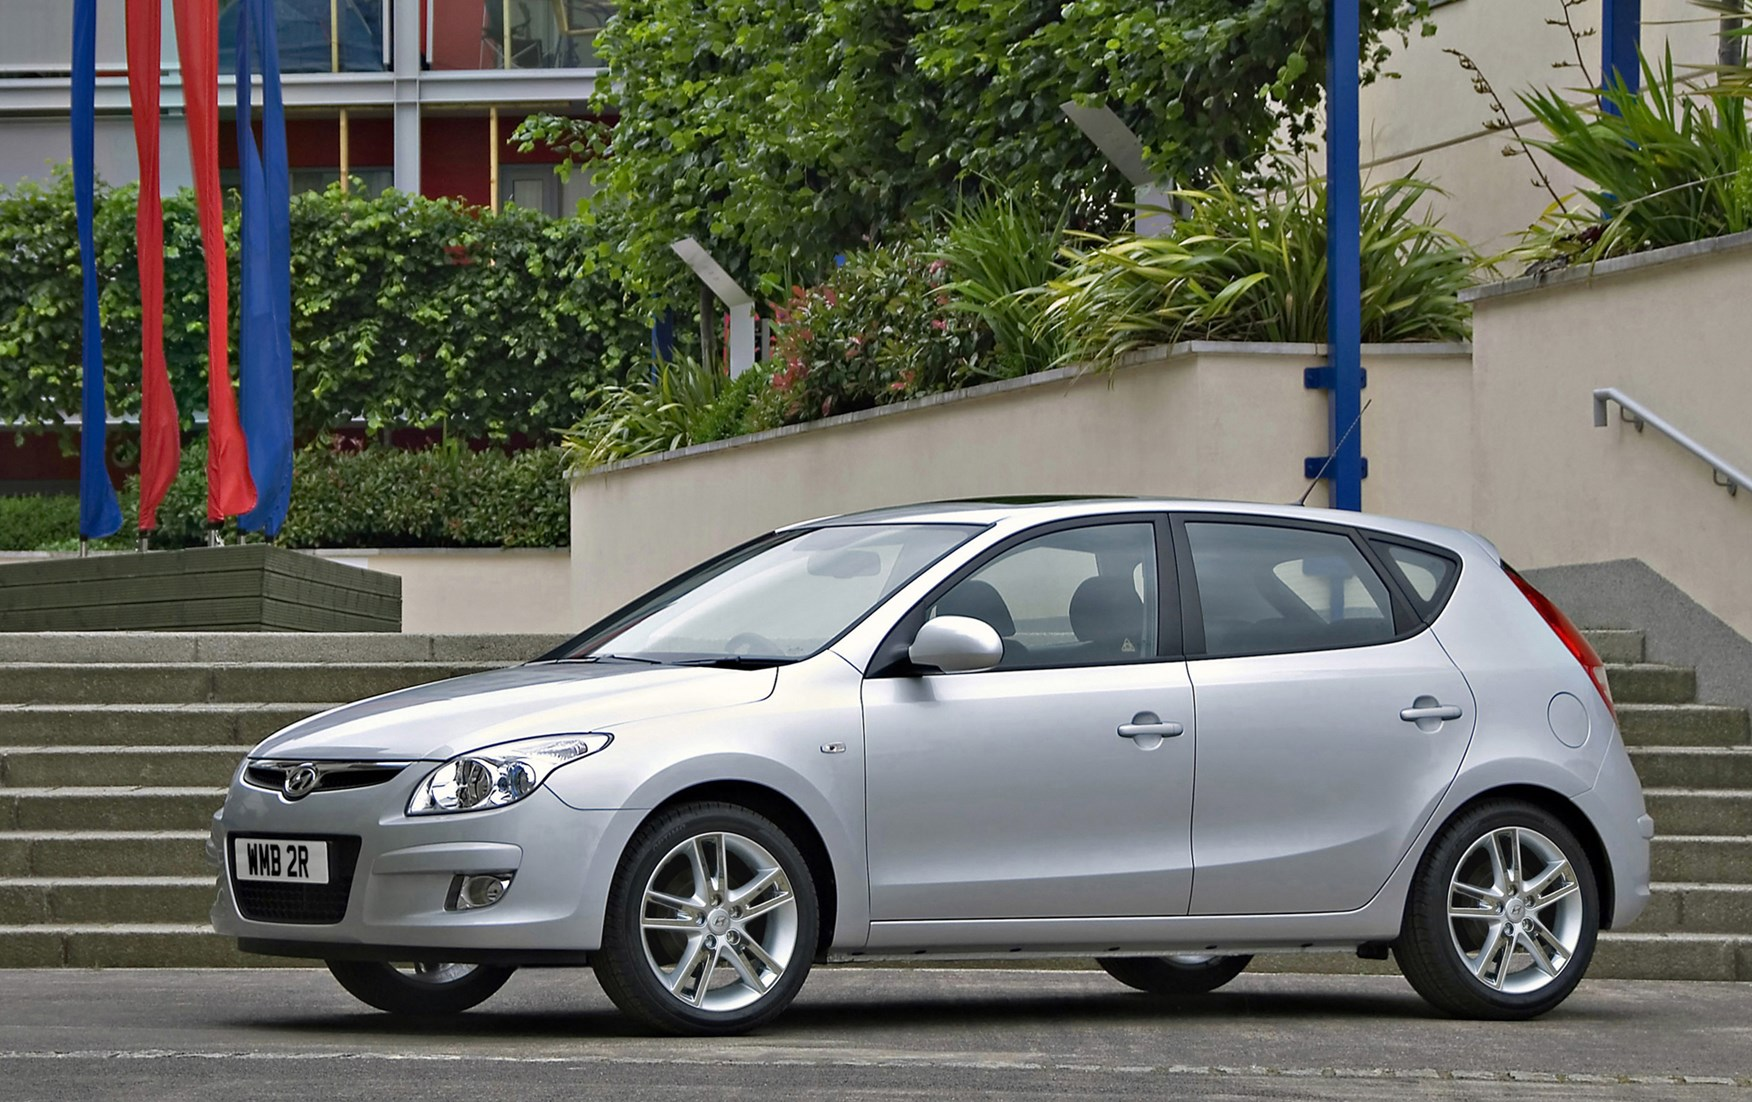 Used Hyundai I30 Hatchback 2007 2011 Review Parkers